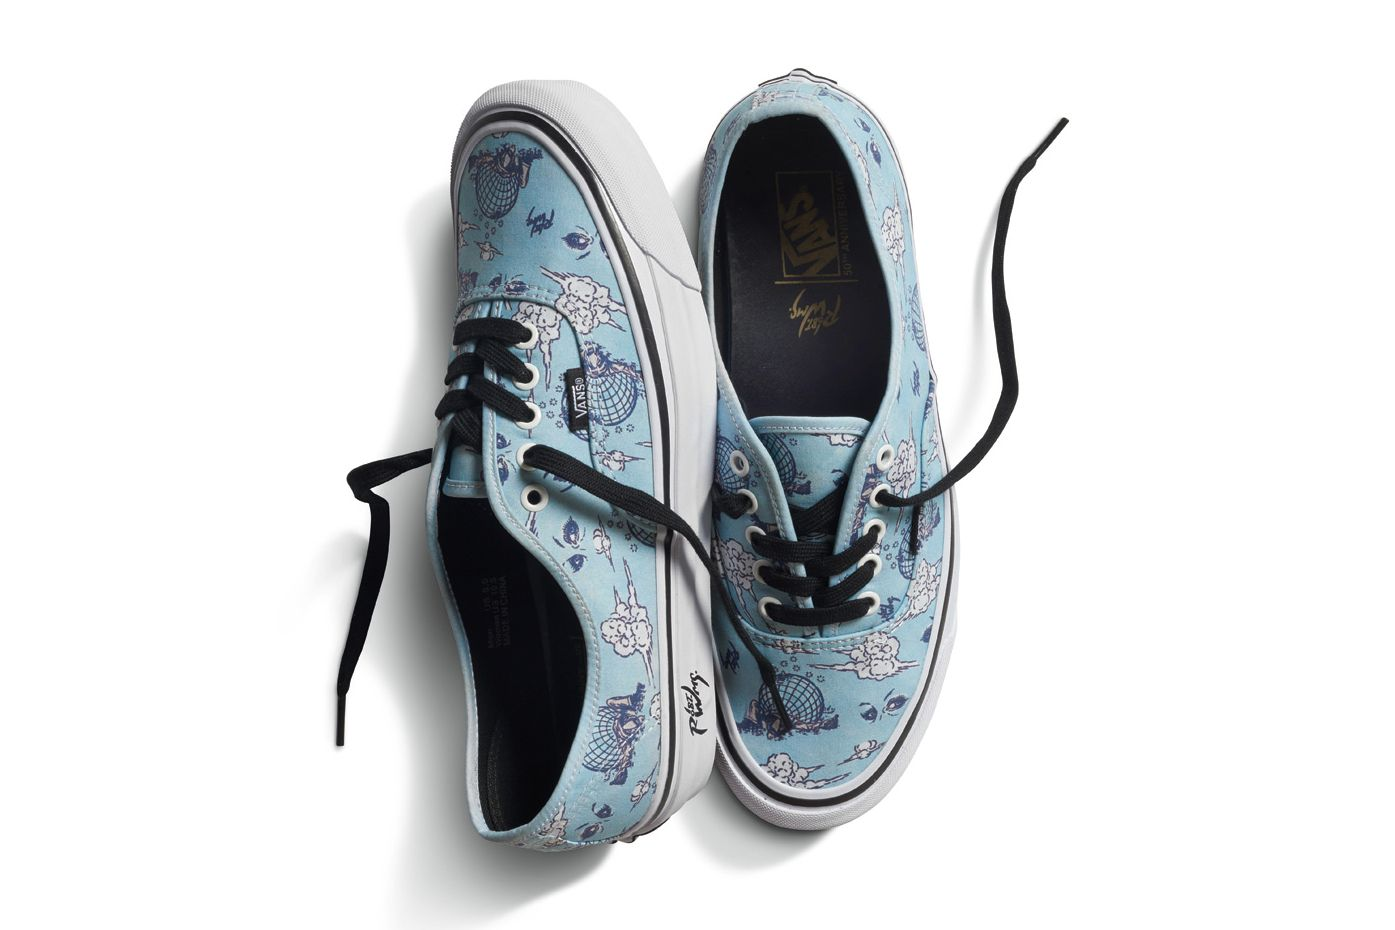 d731ac85e7 Vans Vault Taps Robert Williams for Limited Edition Collaboration ...